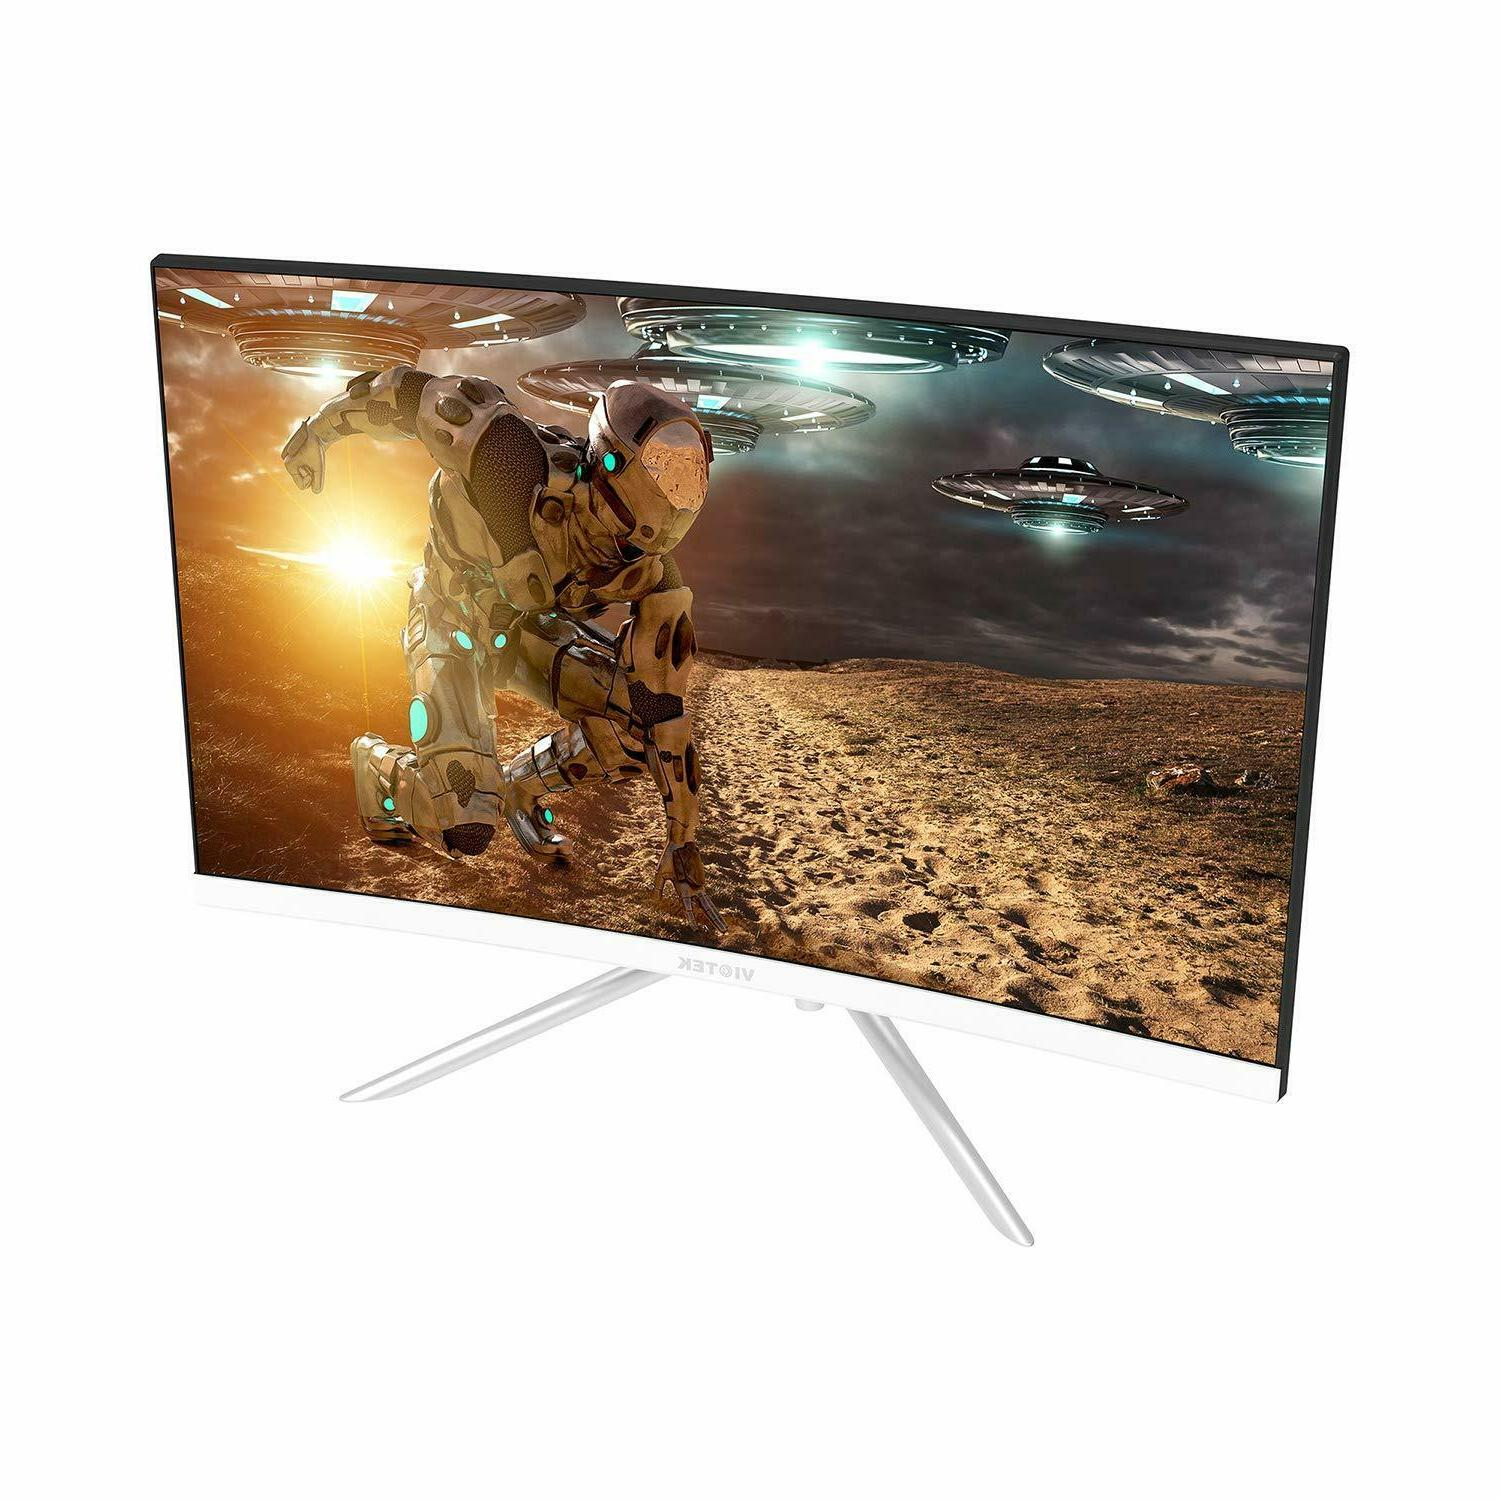 gn24c 24 curved gaming monitor 1080p 144hz